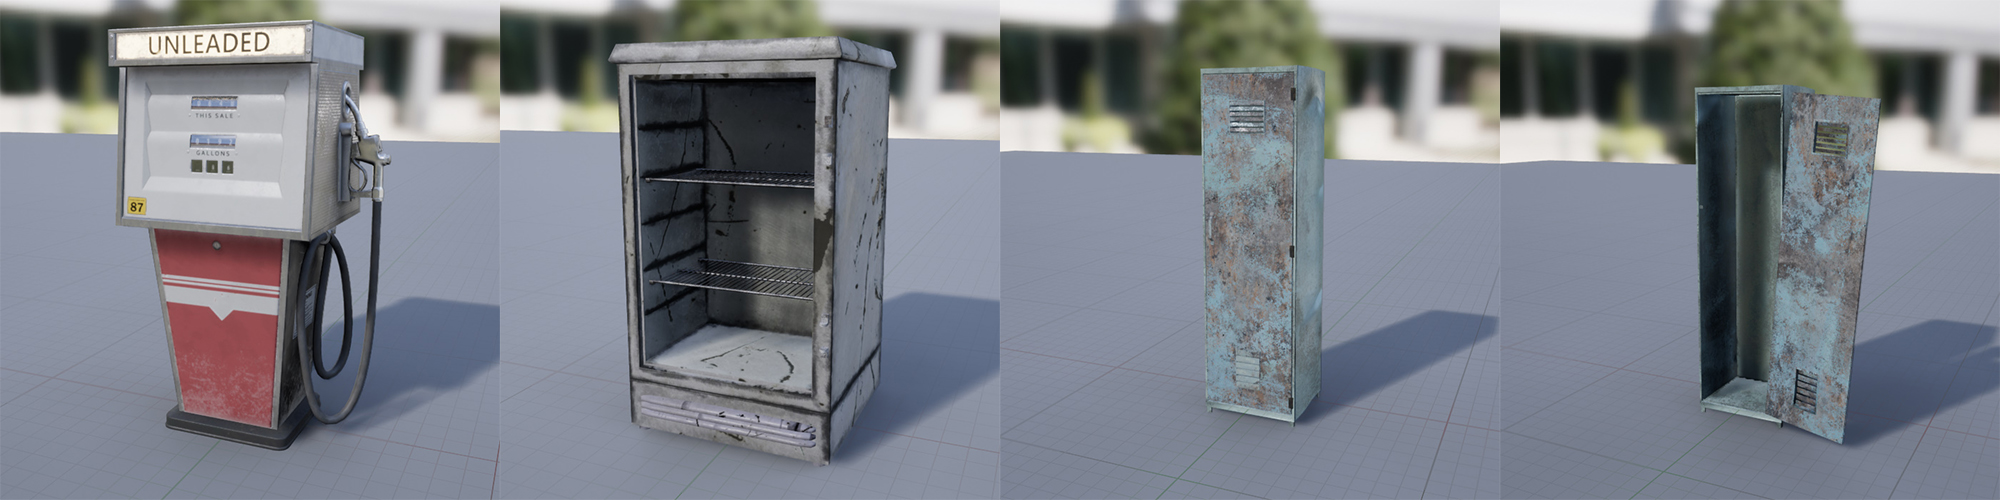 some rust